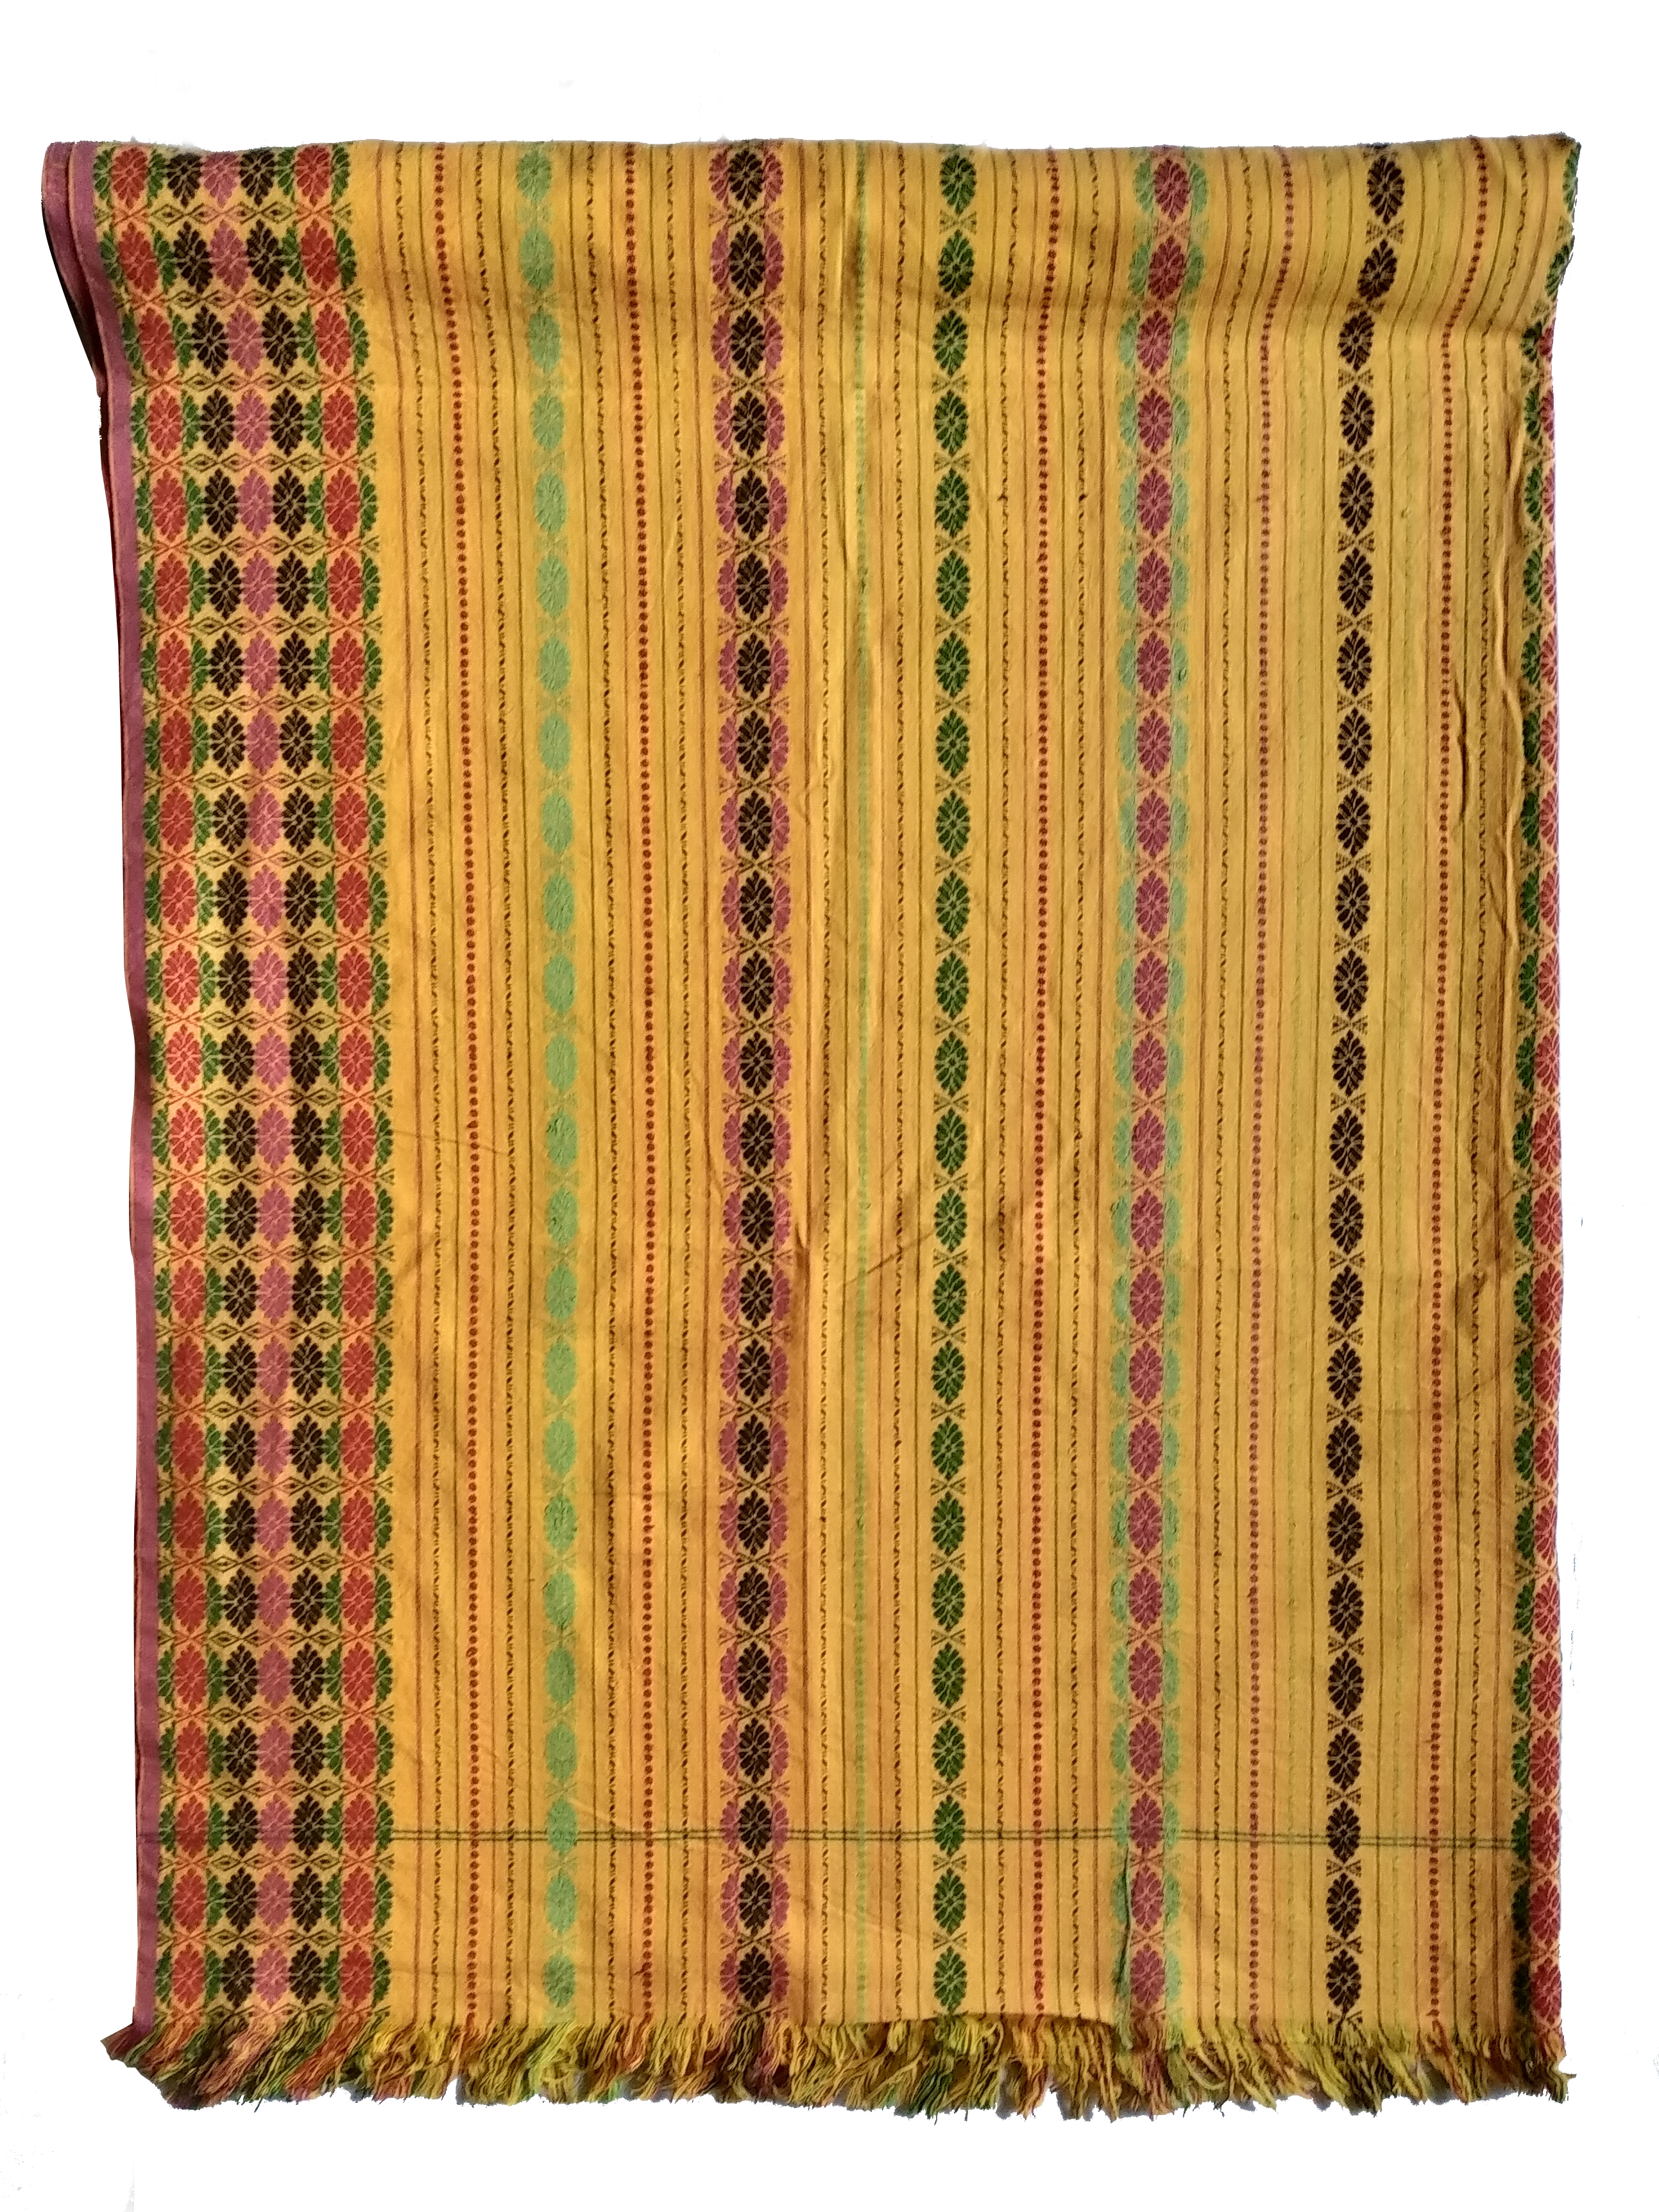 Handwoven dokhonas in traditional design and pattern.